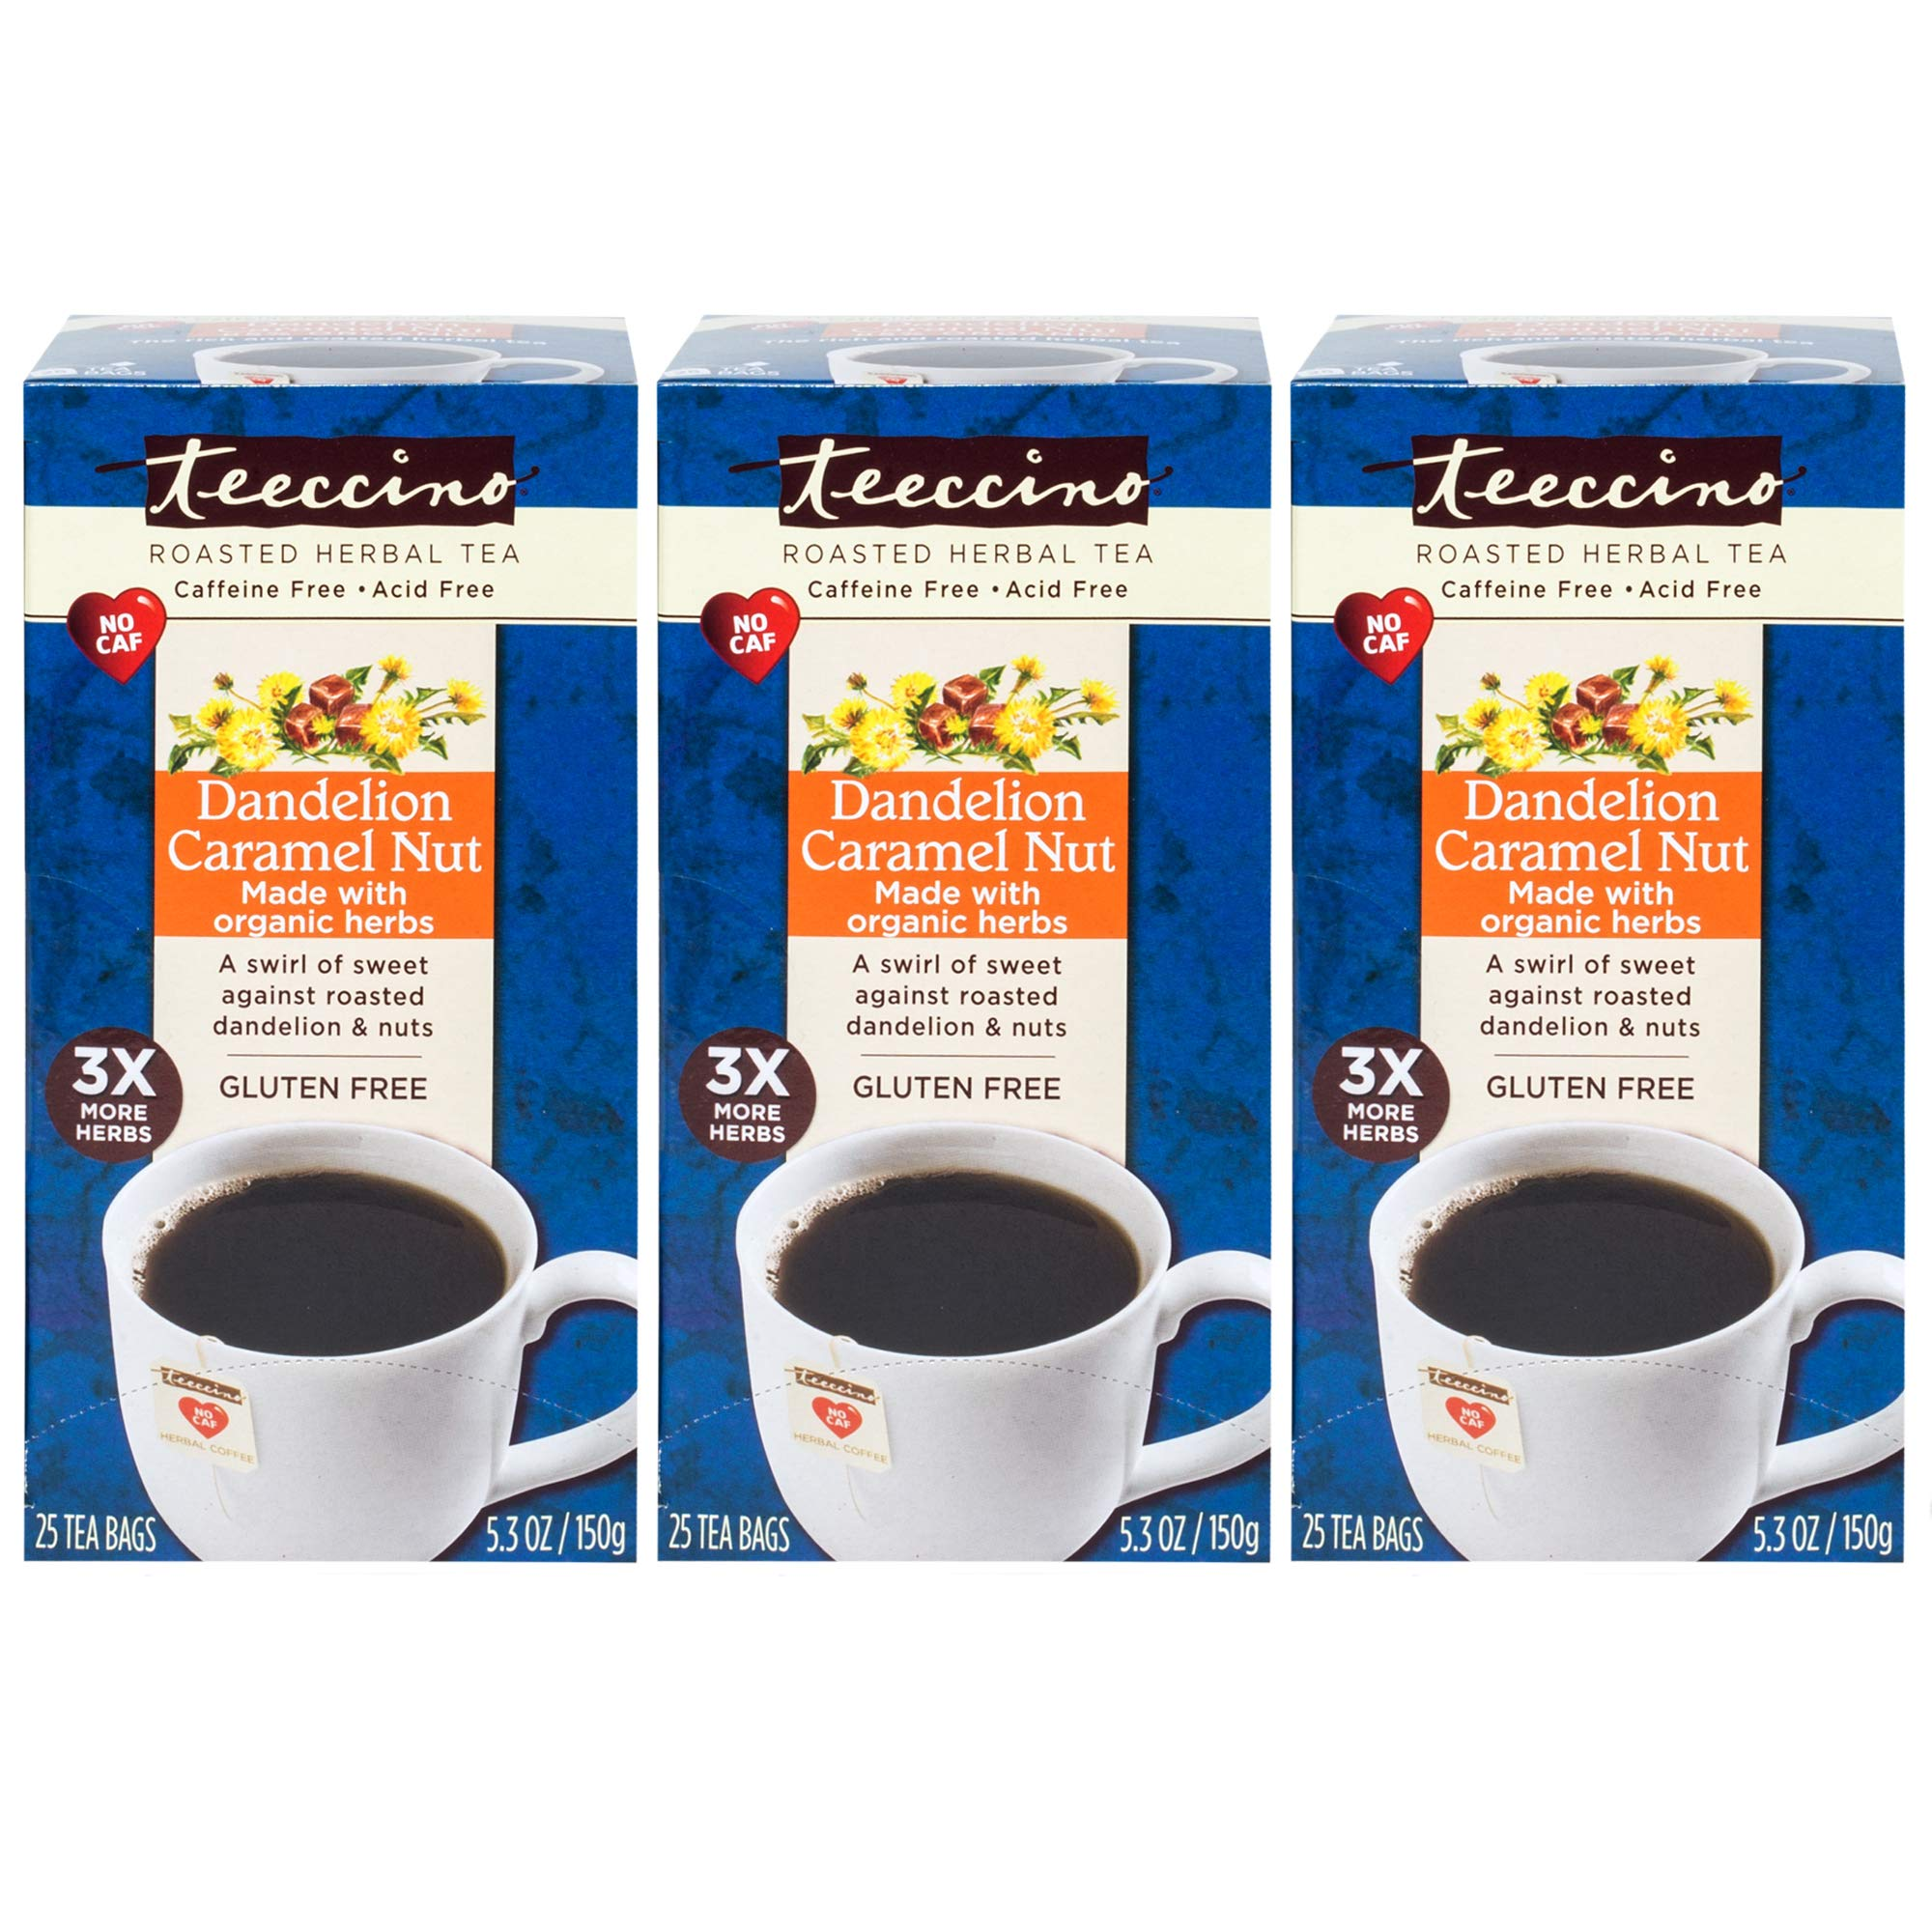 Teeccino Dandelion Caramel Nut Chicory Herbal Tea Bags, Gluten Free, Caffeine Free, Acid Free, 25 Count (Pack of 3) by Teeccino